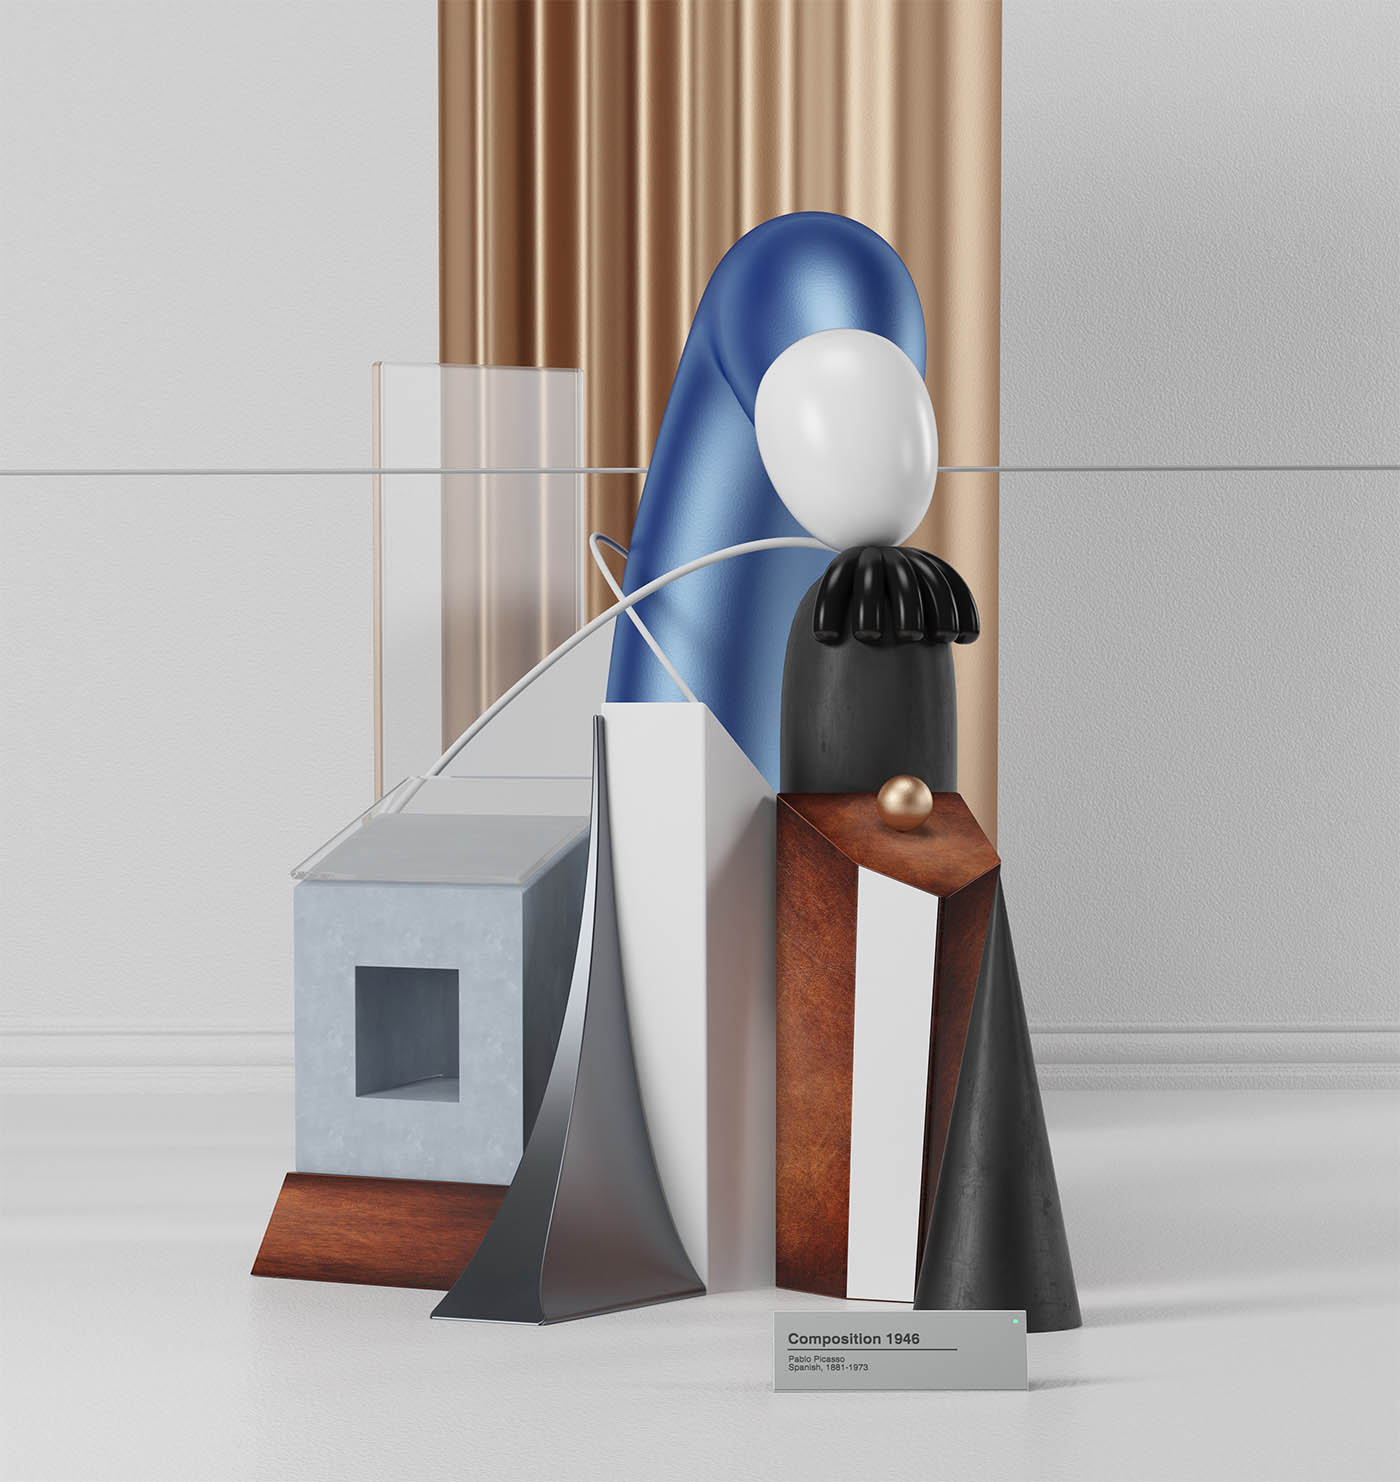 picasso painting 3d model composition